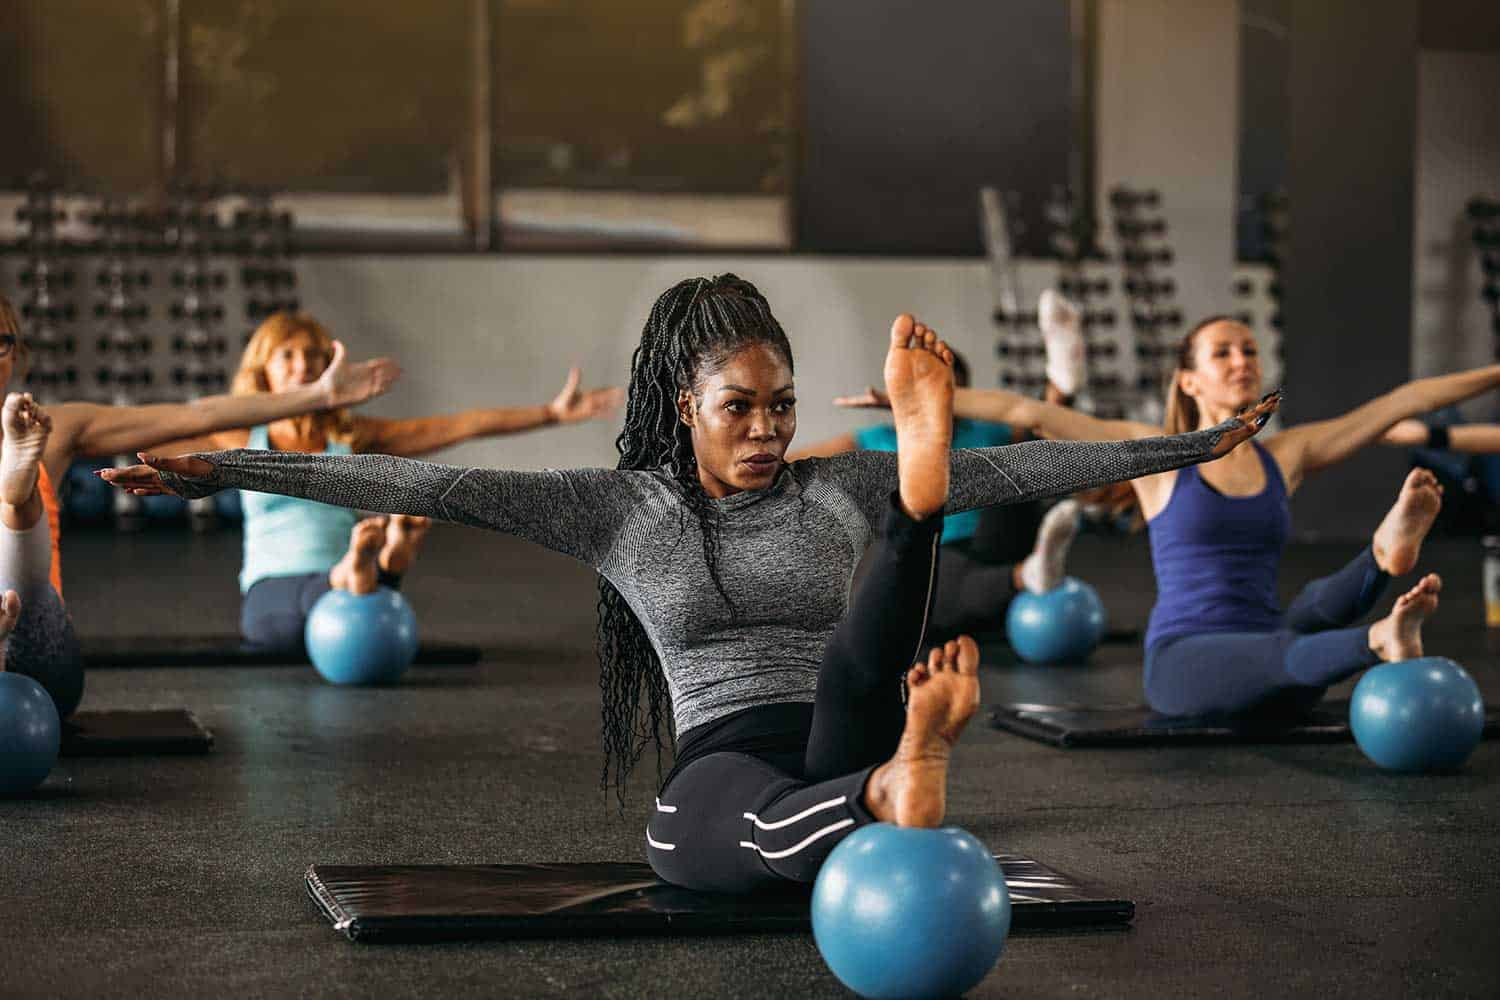 Group of women working balance exercise in the gym